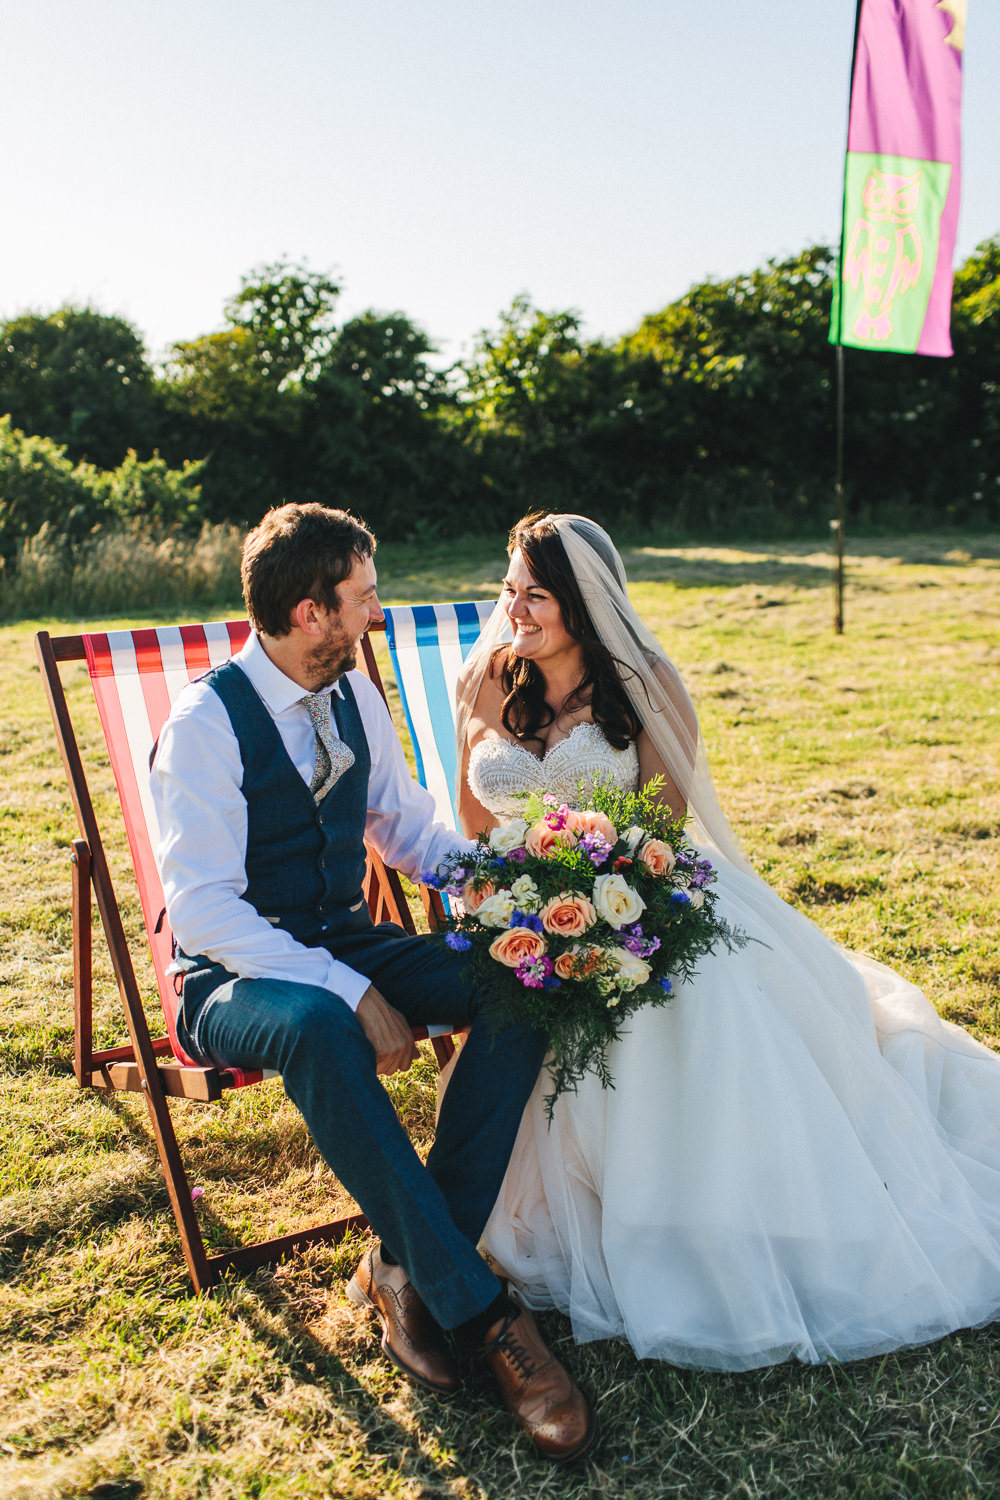 Bride Bridal Separates Sweetheart Neckline Strapless Tulle Floor Length Veil Colourful Multicolour Bouquet Waistcoat Groom Bach Wen Farm Wedding Jessica O'Shaughnessy Photography